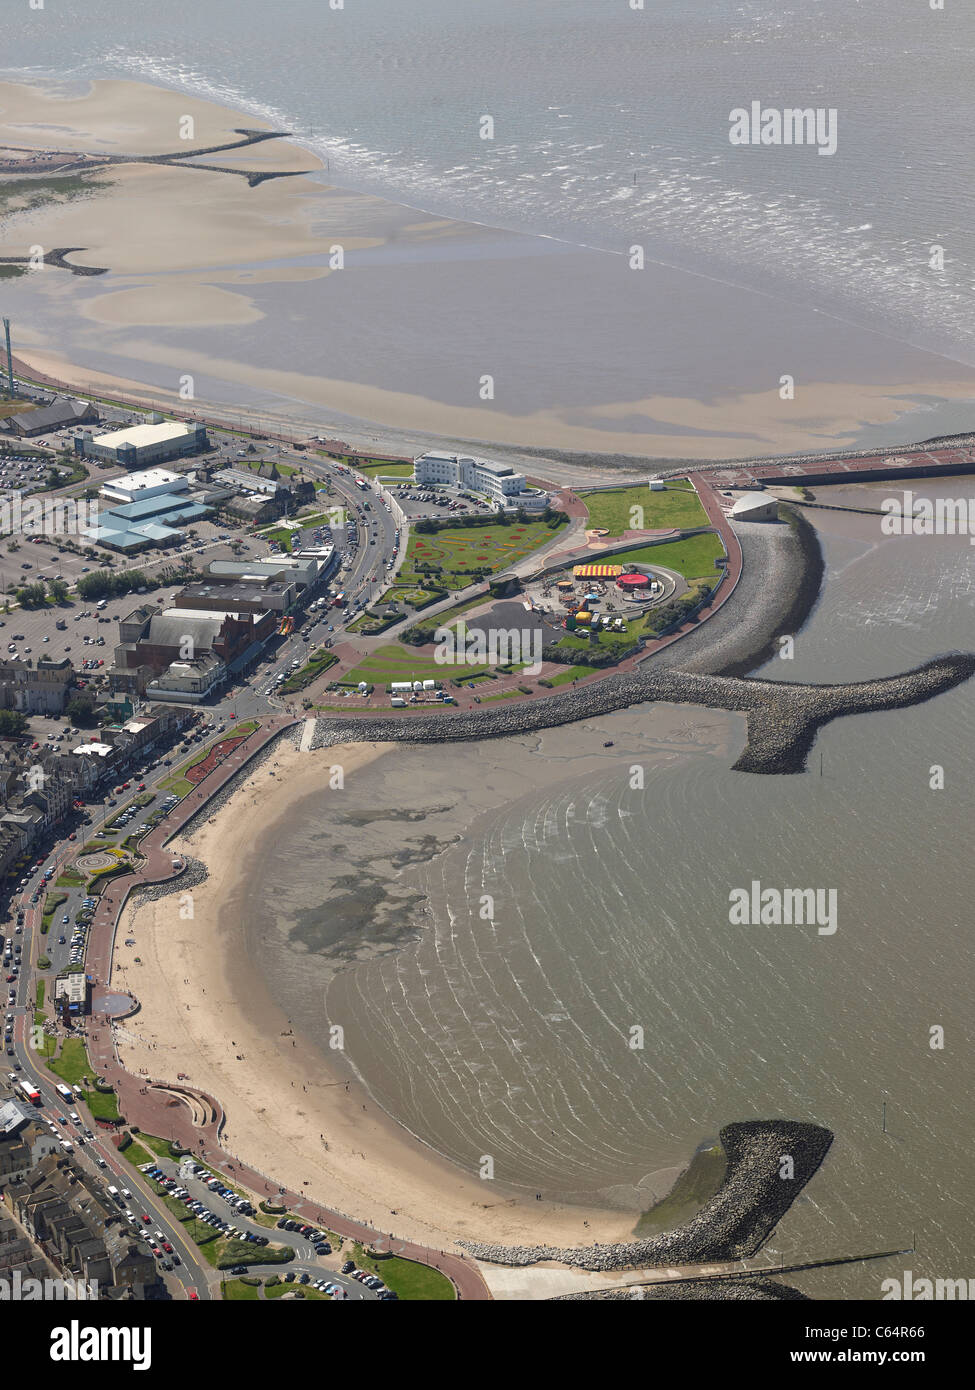 The seaside resort of Morcambe, Lancashire,North West England - Stock Image